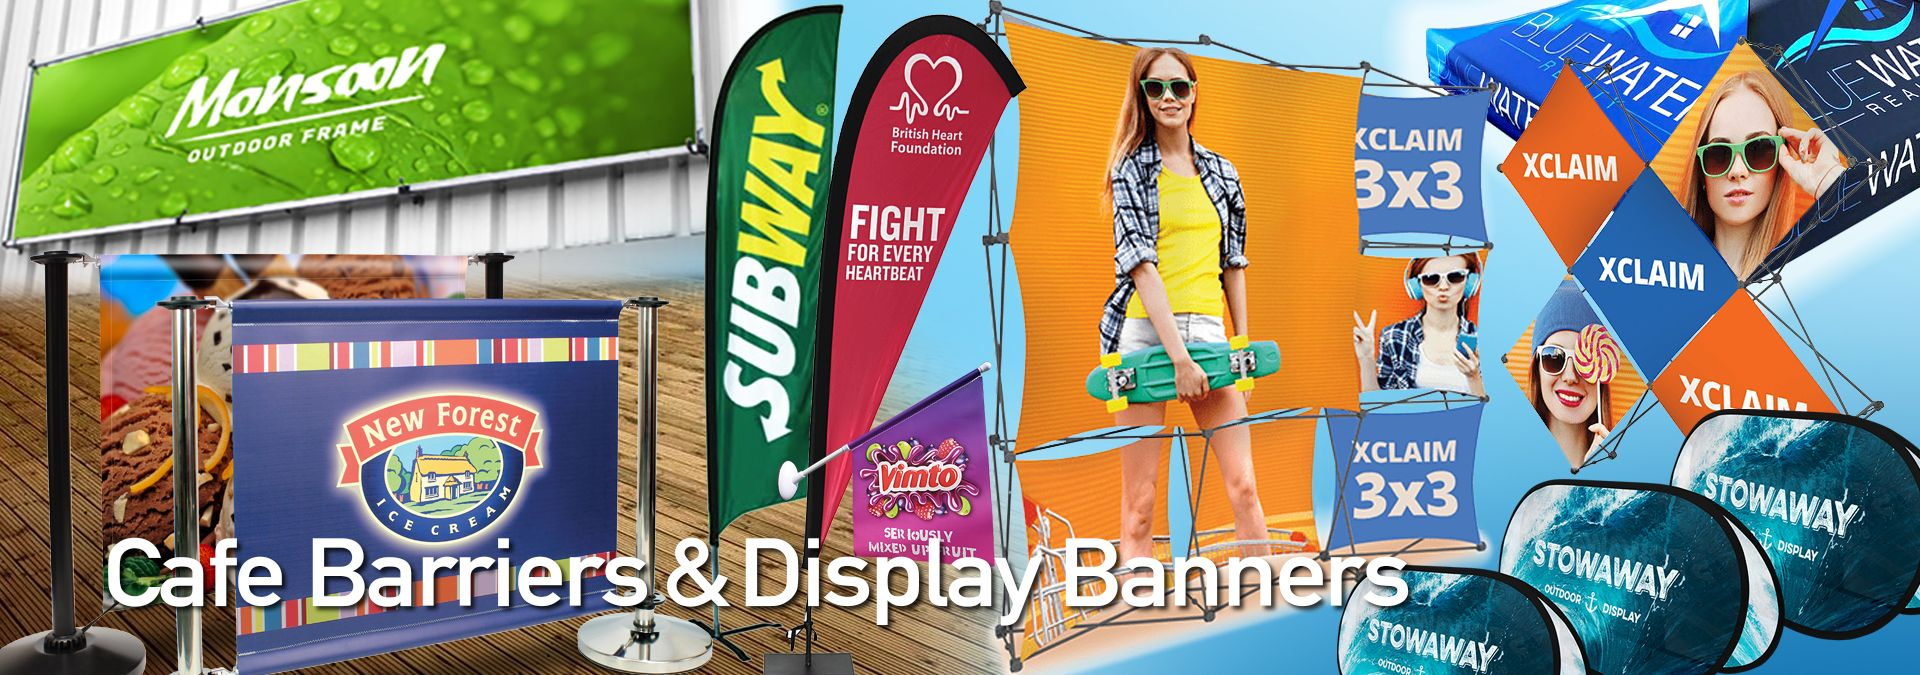 Cafe Barriers. Adfresco Cafe Barriers with Printed Banners. Exhibitions Graphics.